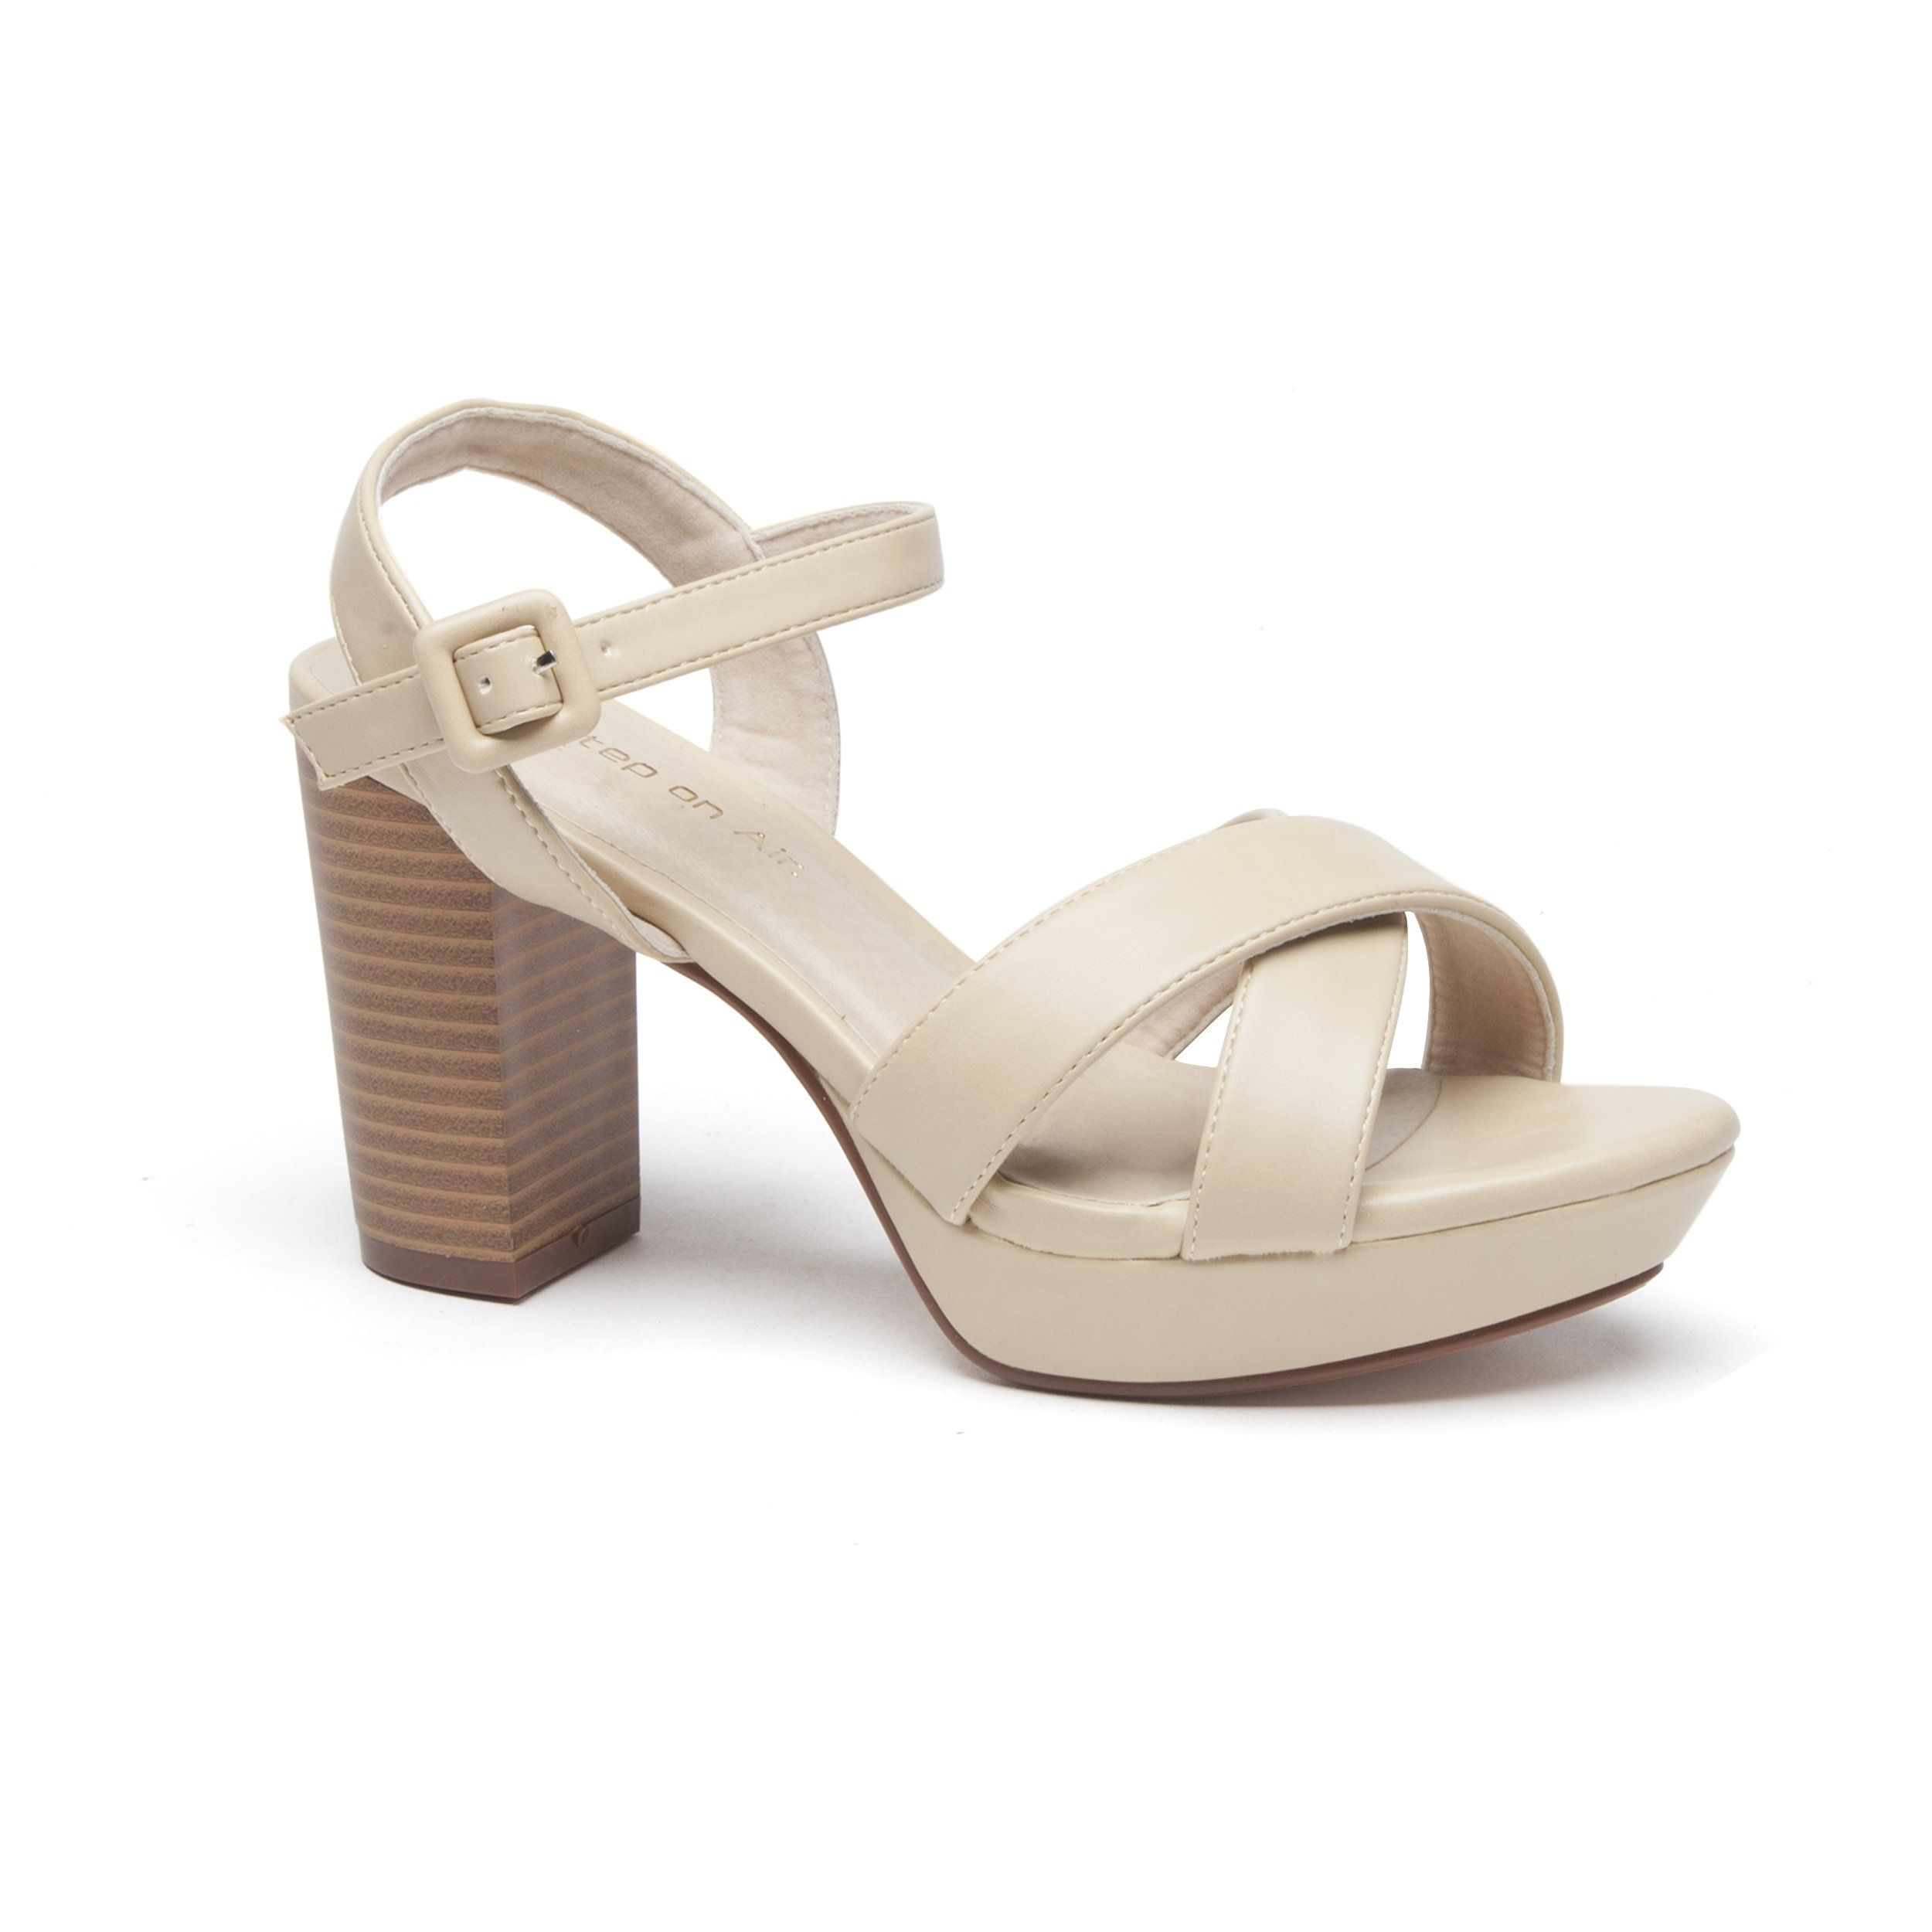 The Wilco Dress Sandals By Step On Air Are A Wide Fit Design Featuring Two Cross Over Straps Across The Toe A Thin An Number One Shoes Buy Shoes Dress Sandals